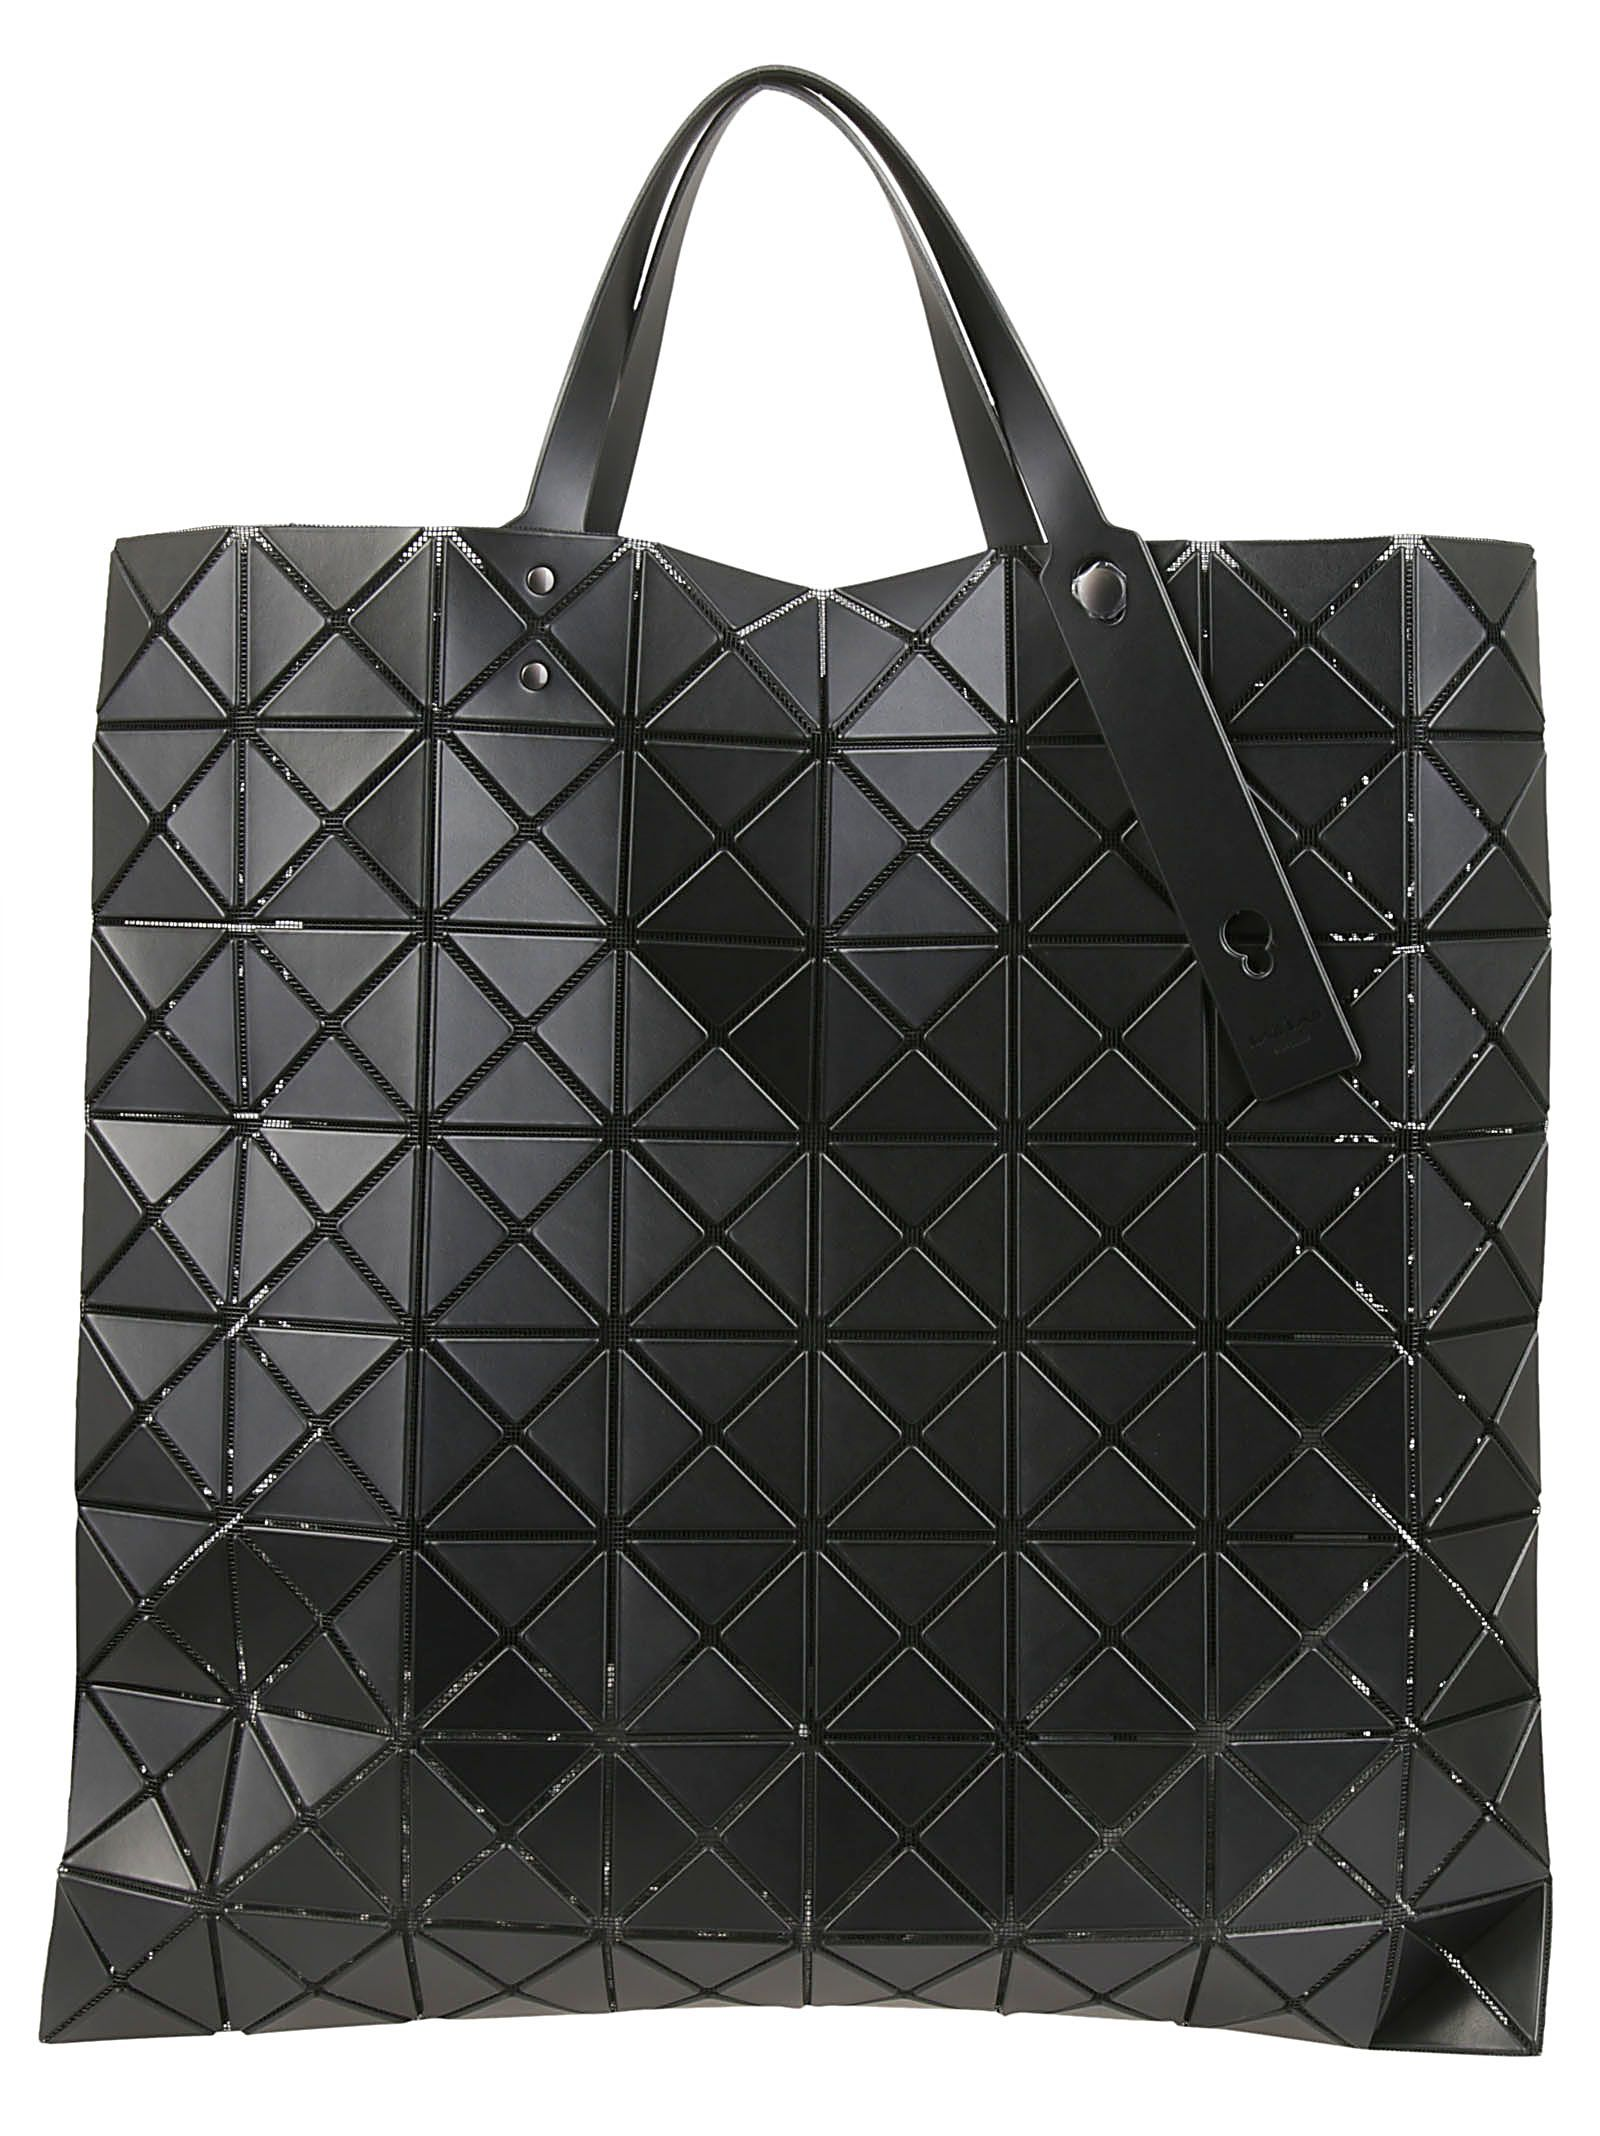 4885b4adc10b Bao Bao Issey Miyake Lucent Matte Tote In Black